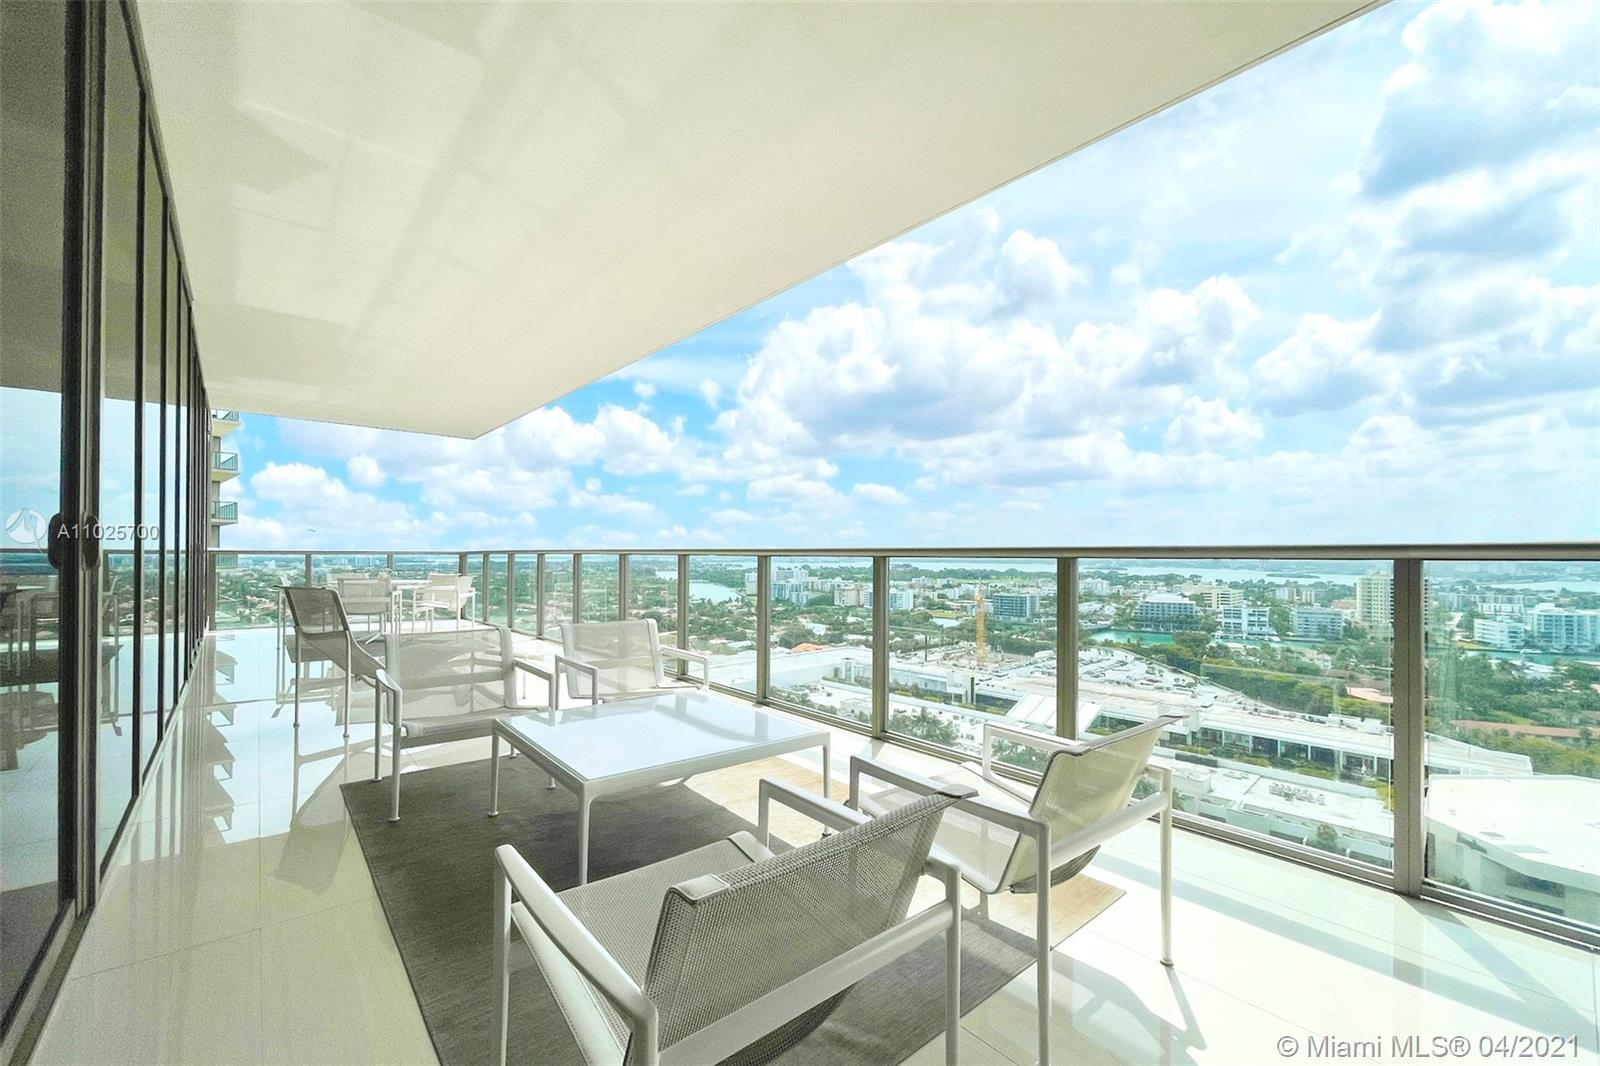 Live at one of the finest addresses in the world! Discover St. Regis, Bal Harbour highlighting extraordinary living & incredible endless 5 star amenities! Immaculate partially furnished designer residence by Steven G features a 1,599SF split floorplan, 2bd/2.5ba, floor-to-ceiling impact glass & 455SF corner SW terrace offering skyline, sunset & bay views. Finishes incl. marble floors, European cabinetry, high-end appliances; Wolf stove, Meile espresso machine & wine cooler. Spacious Master offers 2 glass walls, built-out closet & spa-like bath w/ dual sinks & separate whirlpool tub/rain forest shower. St. Regis, Bal Harbour offers; 24-hour concierge, room service, cabanas, 4 pools, 3 restaurants, daily fitness classes, 14,000SF Remede Spa & more directly across from Bal Harbour Shops!